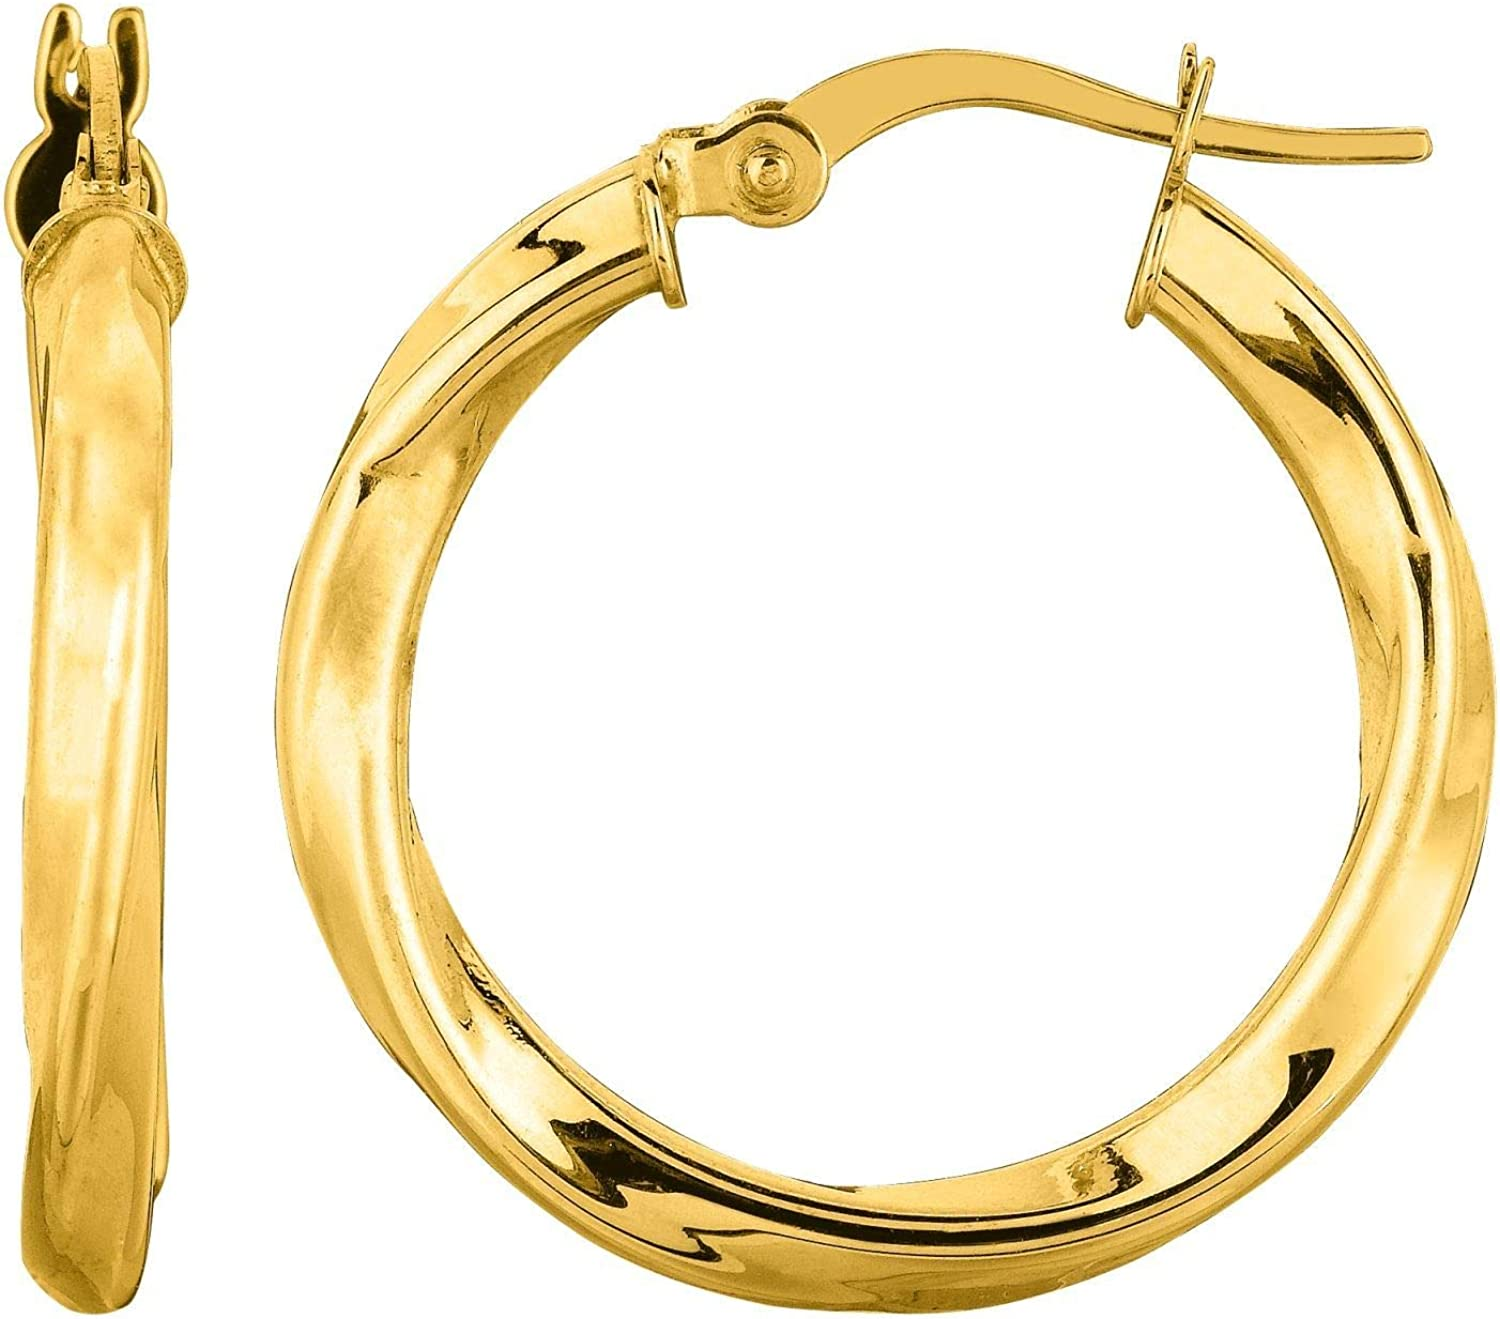 14K Yellow Gold 3.0X20mm Shiny Round Tube Italian Twists Hoop Earring with Hinged Clasp